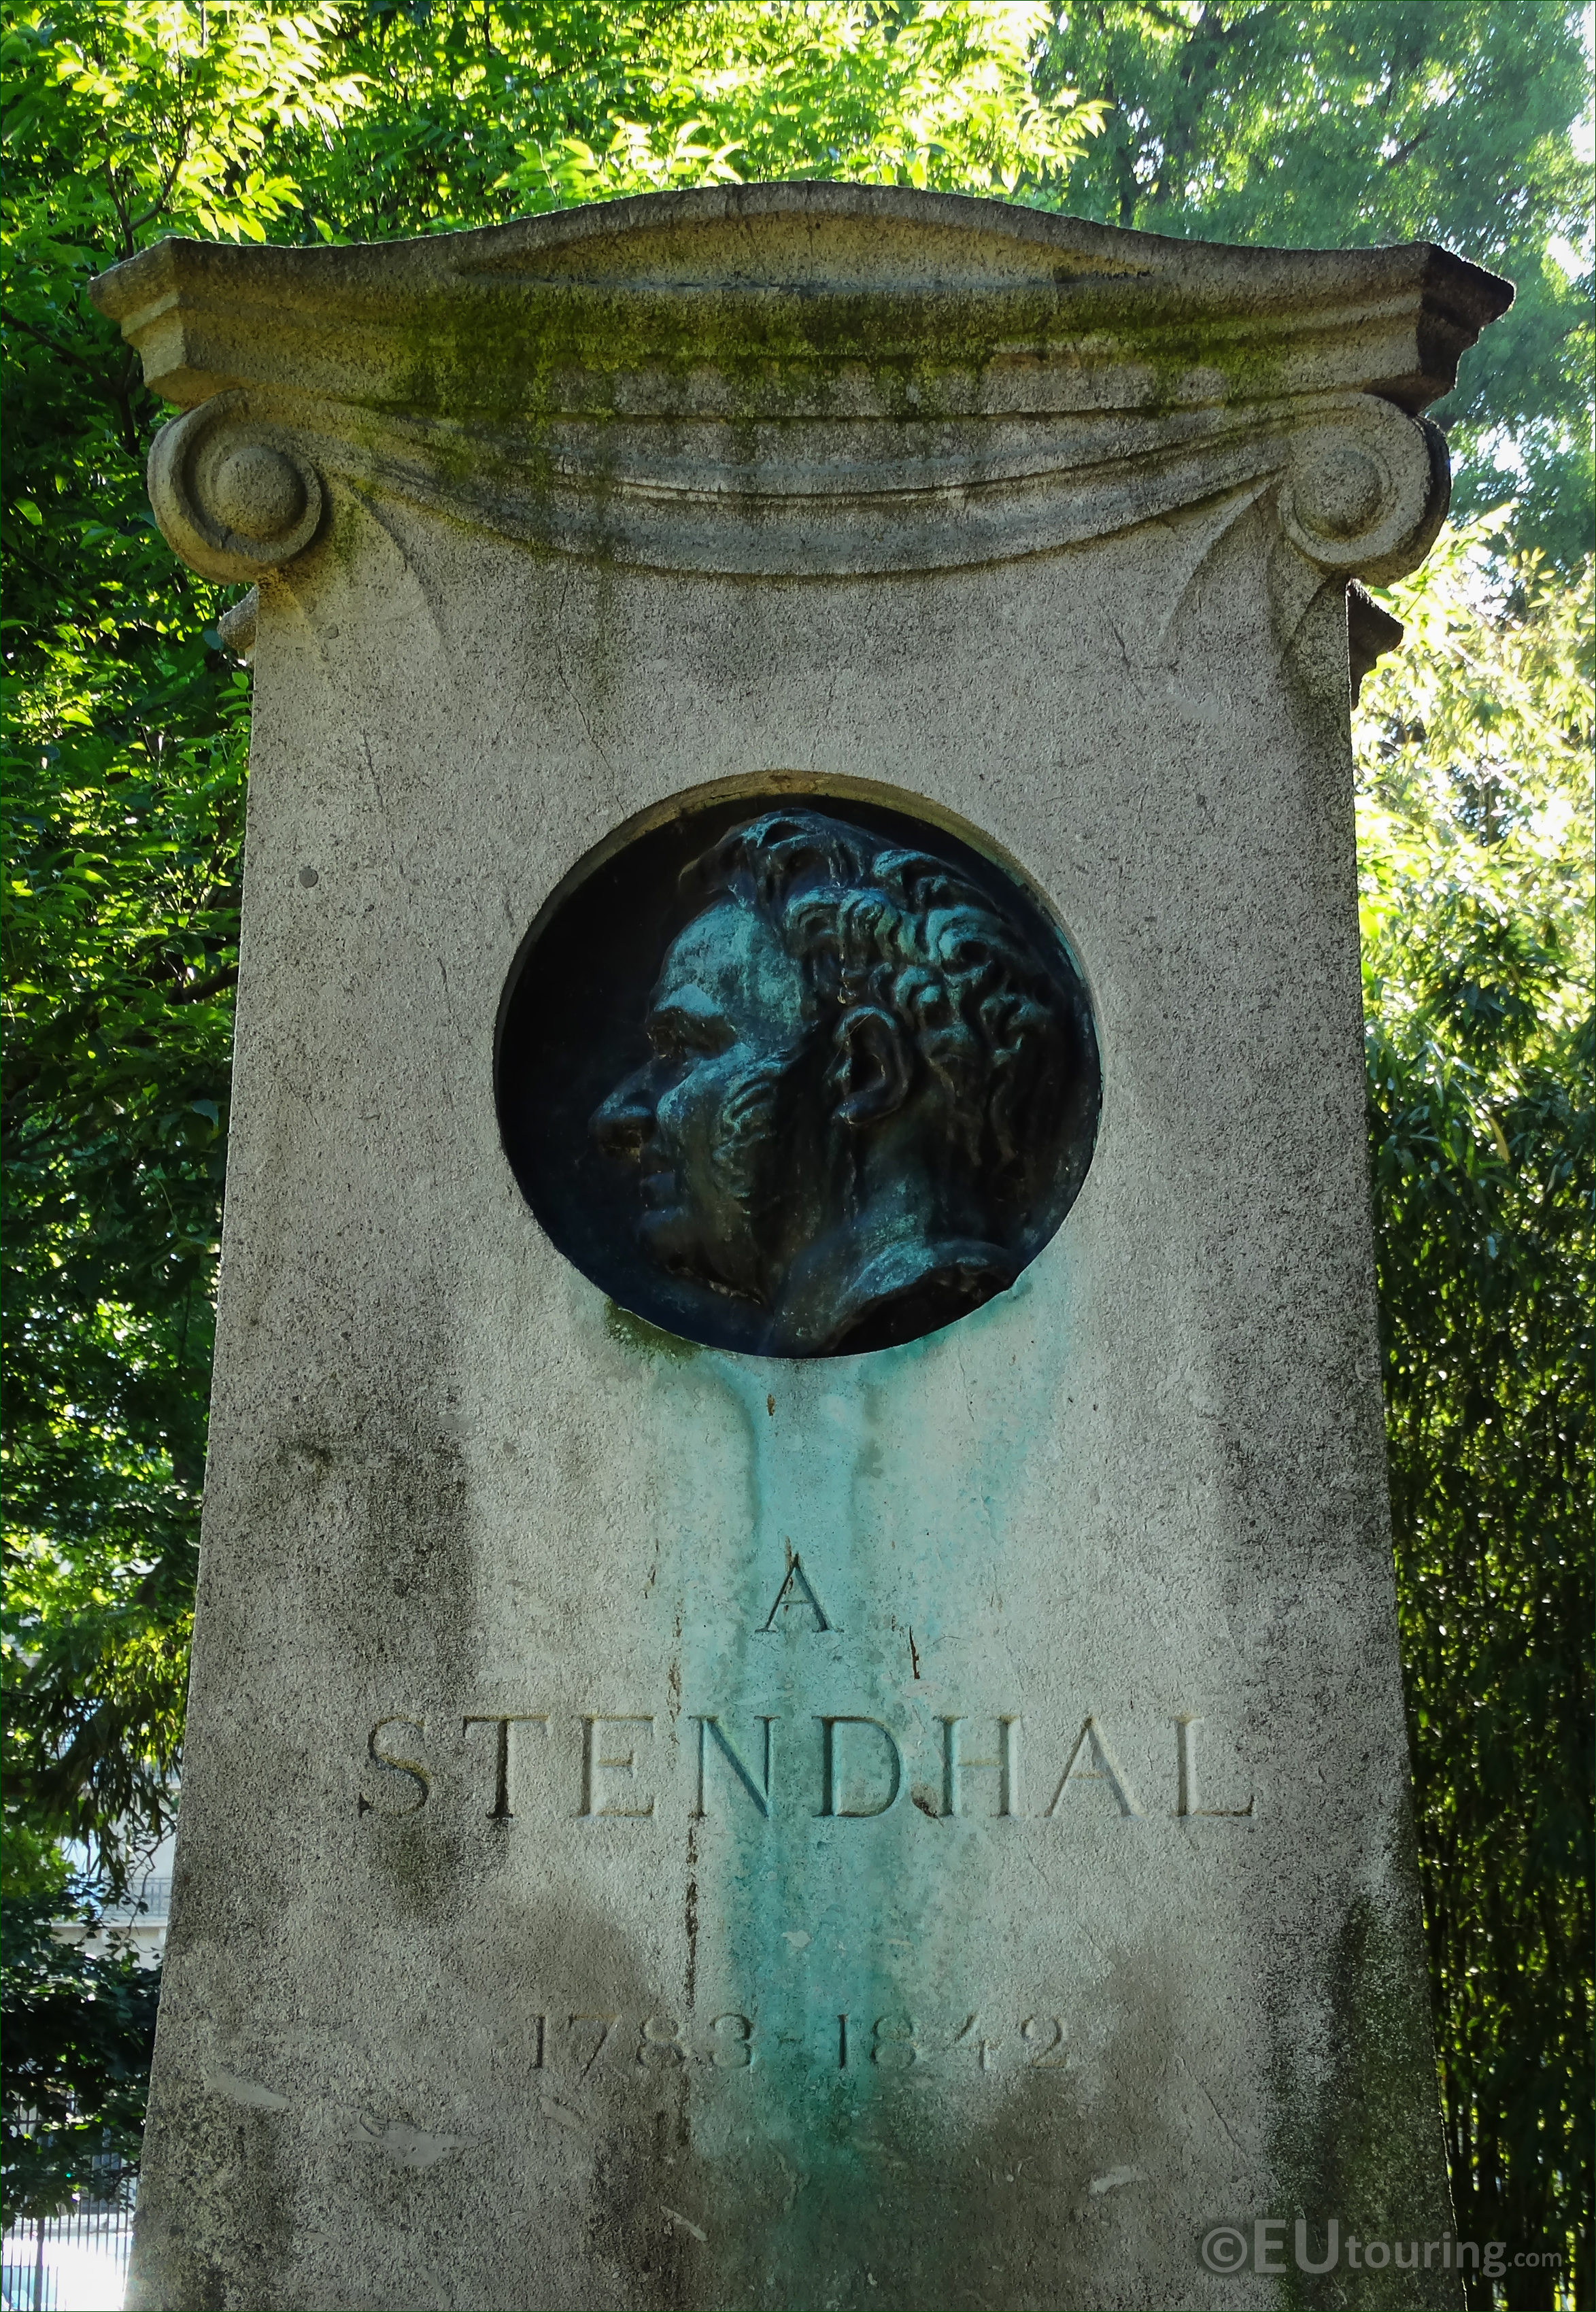 photos of stendhal monument in gardens paris page  stendhal or henri beyle commemorative monument